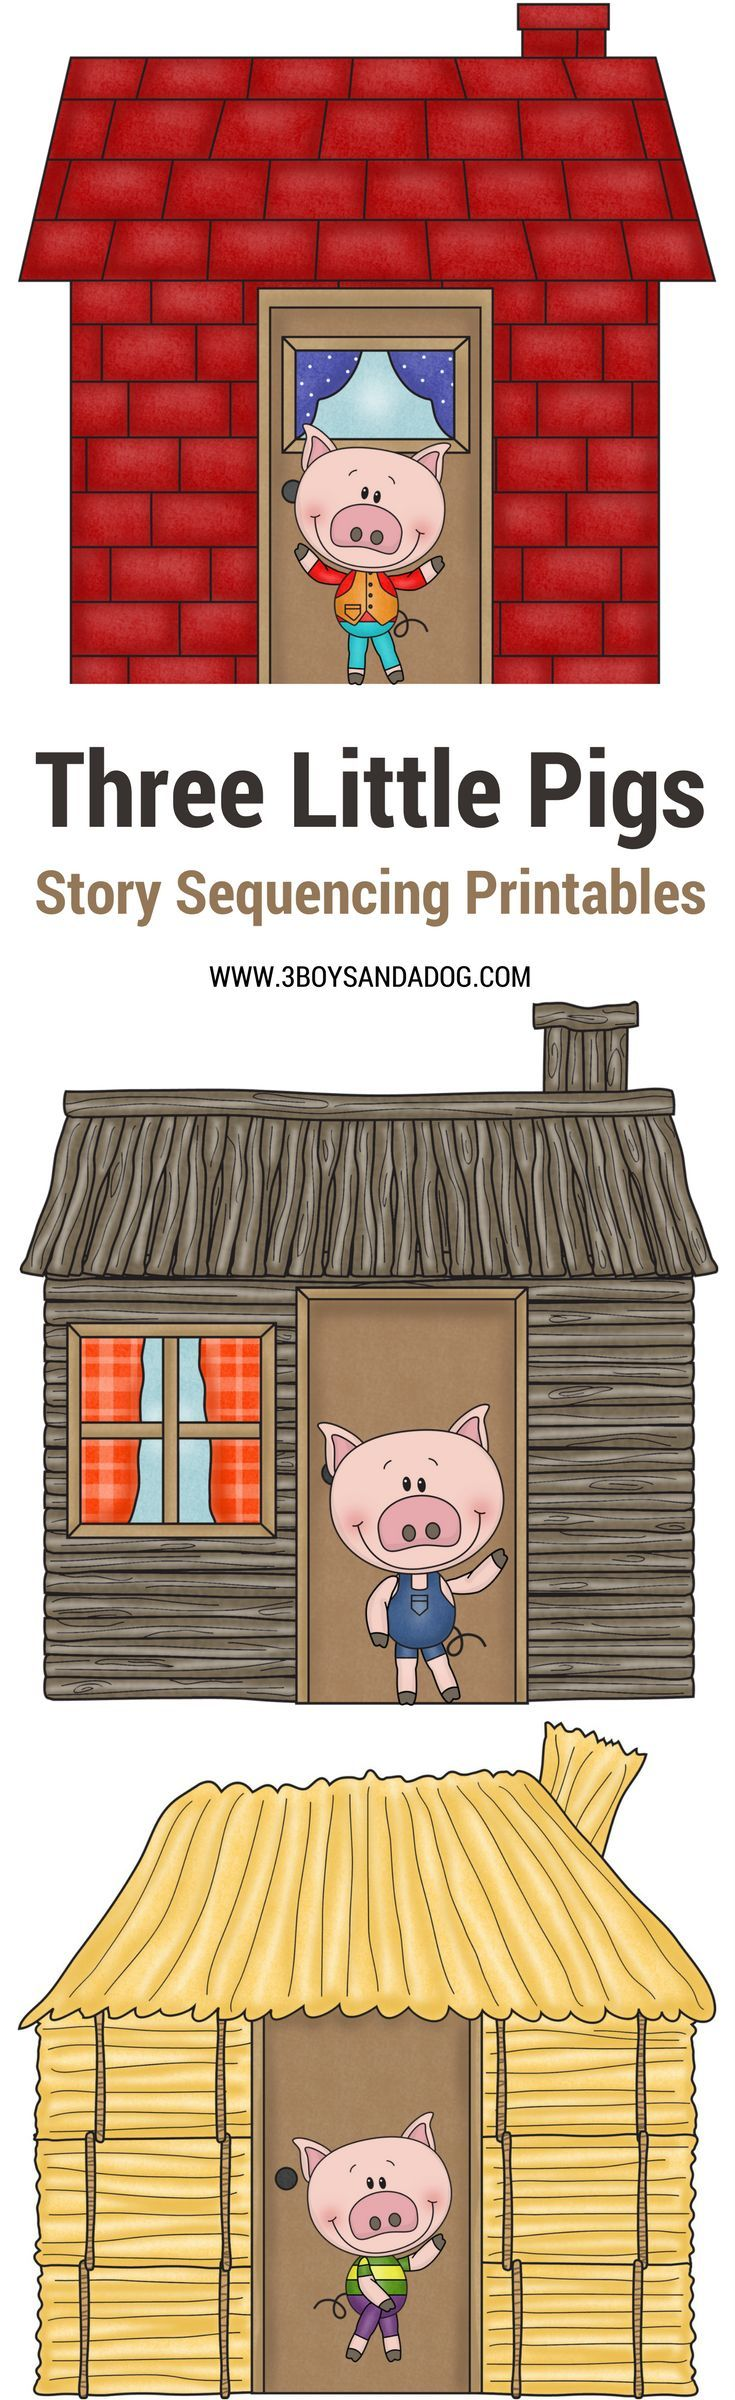 Resource image inside 3 little pigs story printable